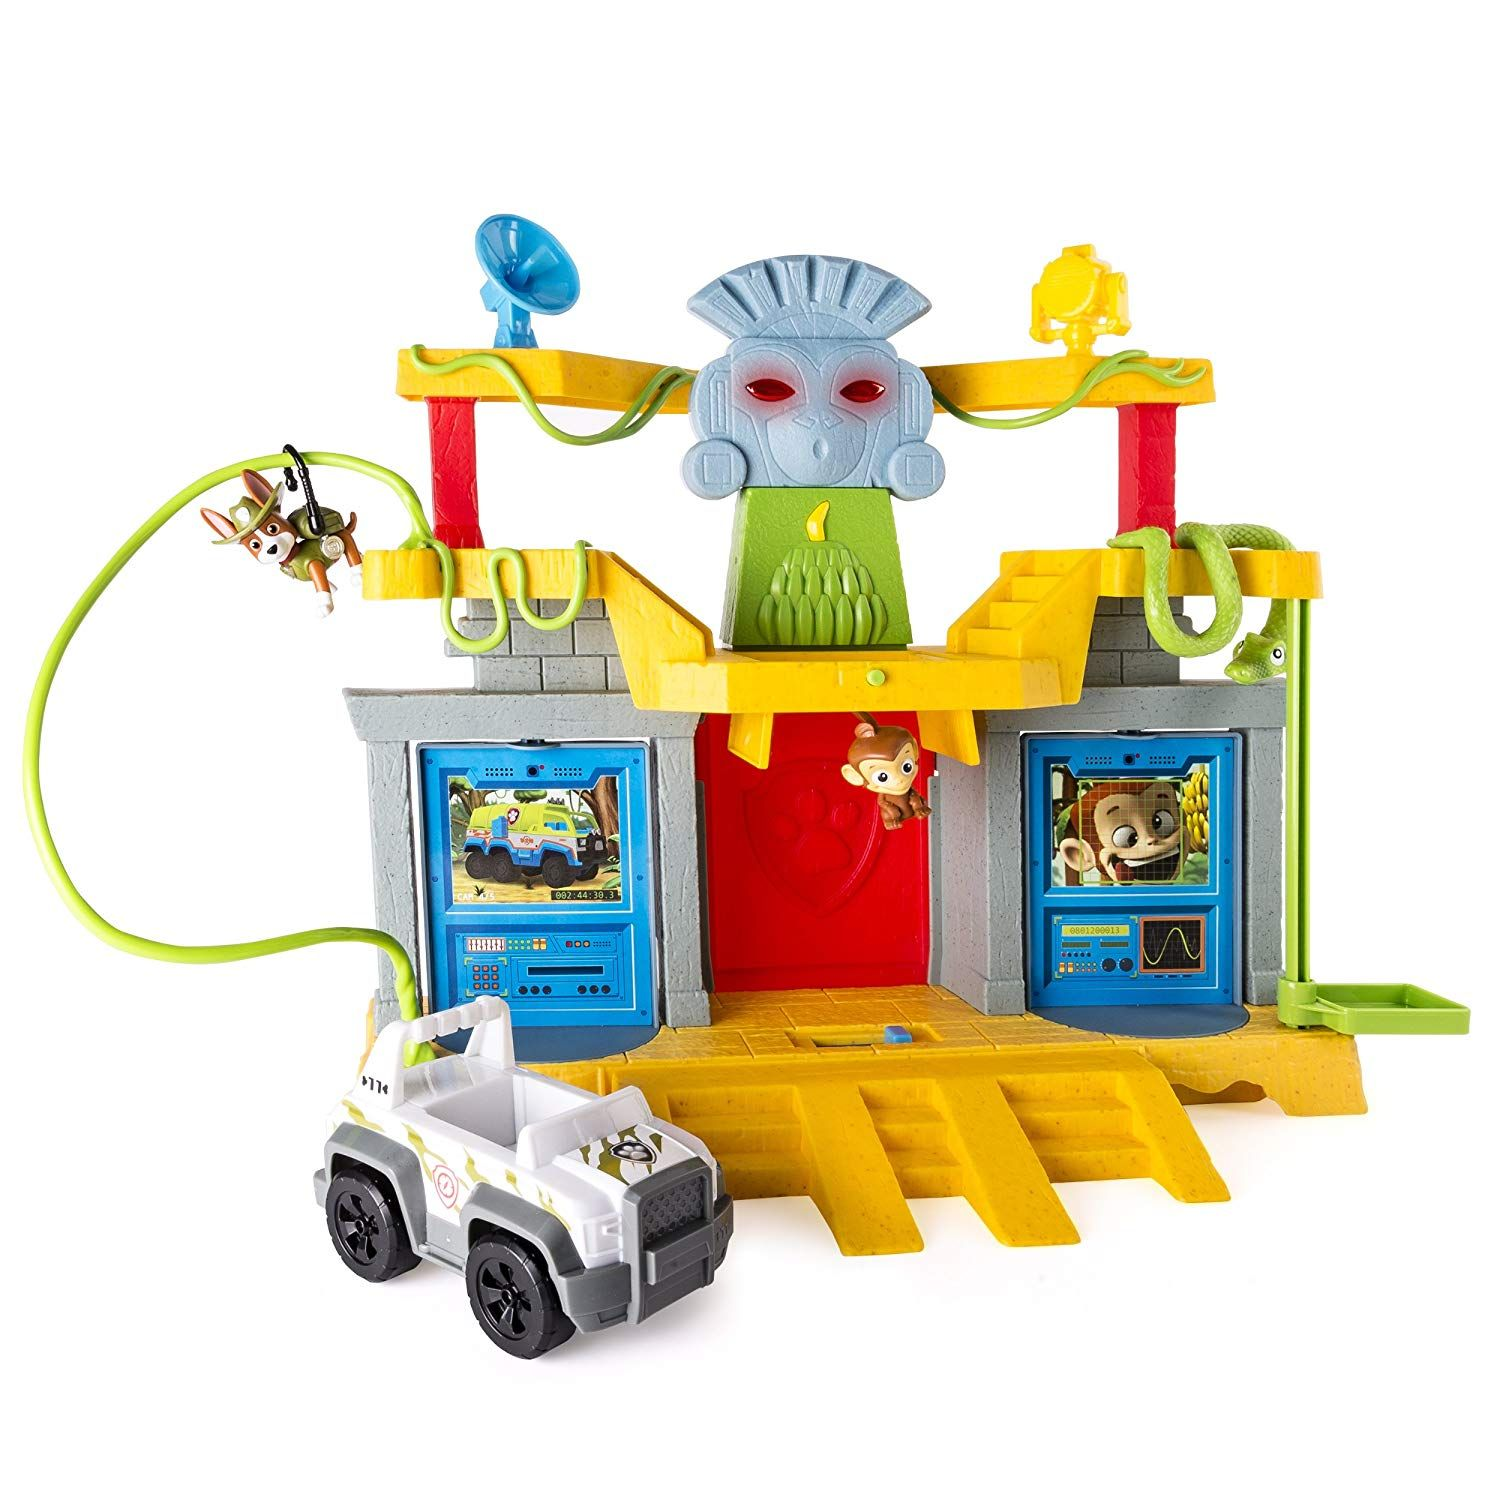 This Is One Of Our Favorite Toys For 4 Year Old We Think Makes A Wonderful Gift And Will Keep Your Childs Interest